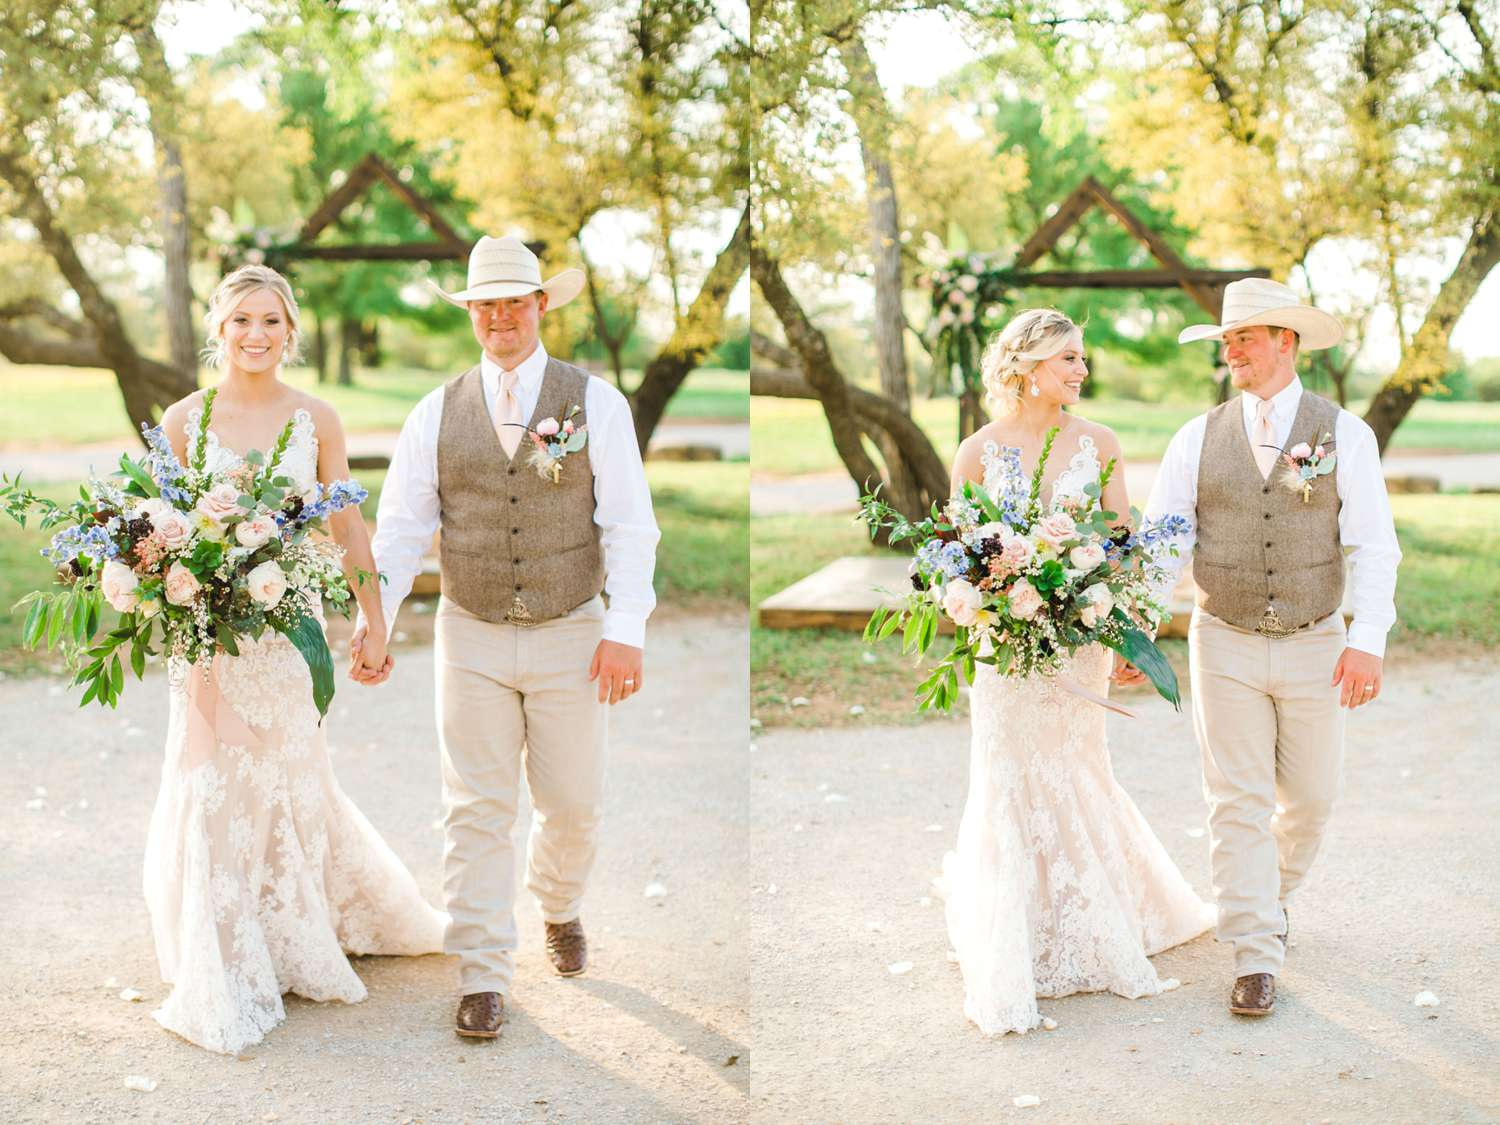 SARAH+TREVOR+BADGETT+SPARROW+CREEK+GRAHAM+TEXAS+ALLEEJ+WEDDINGS_0094.jpg